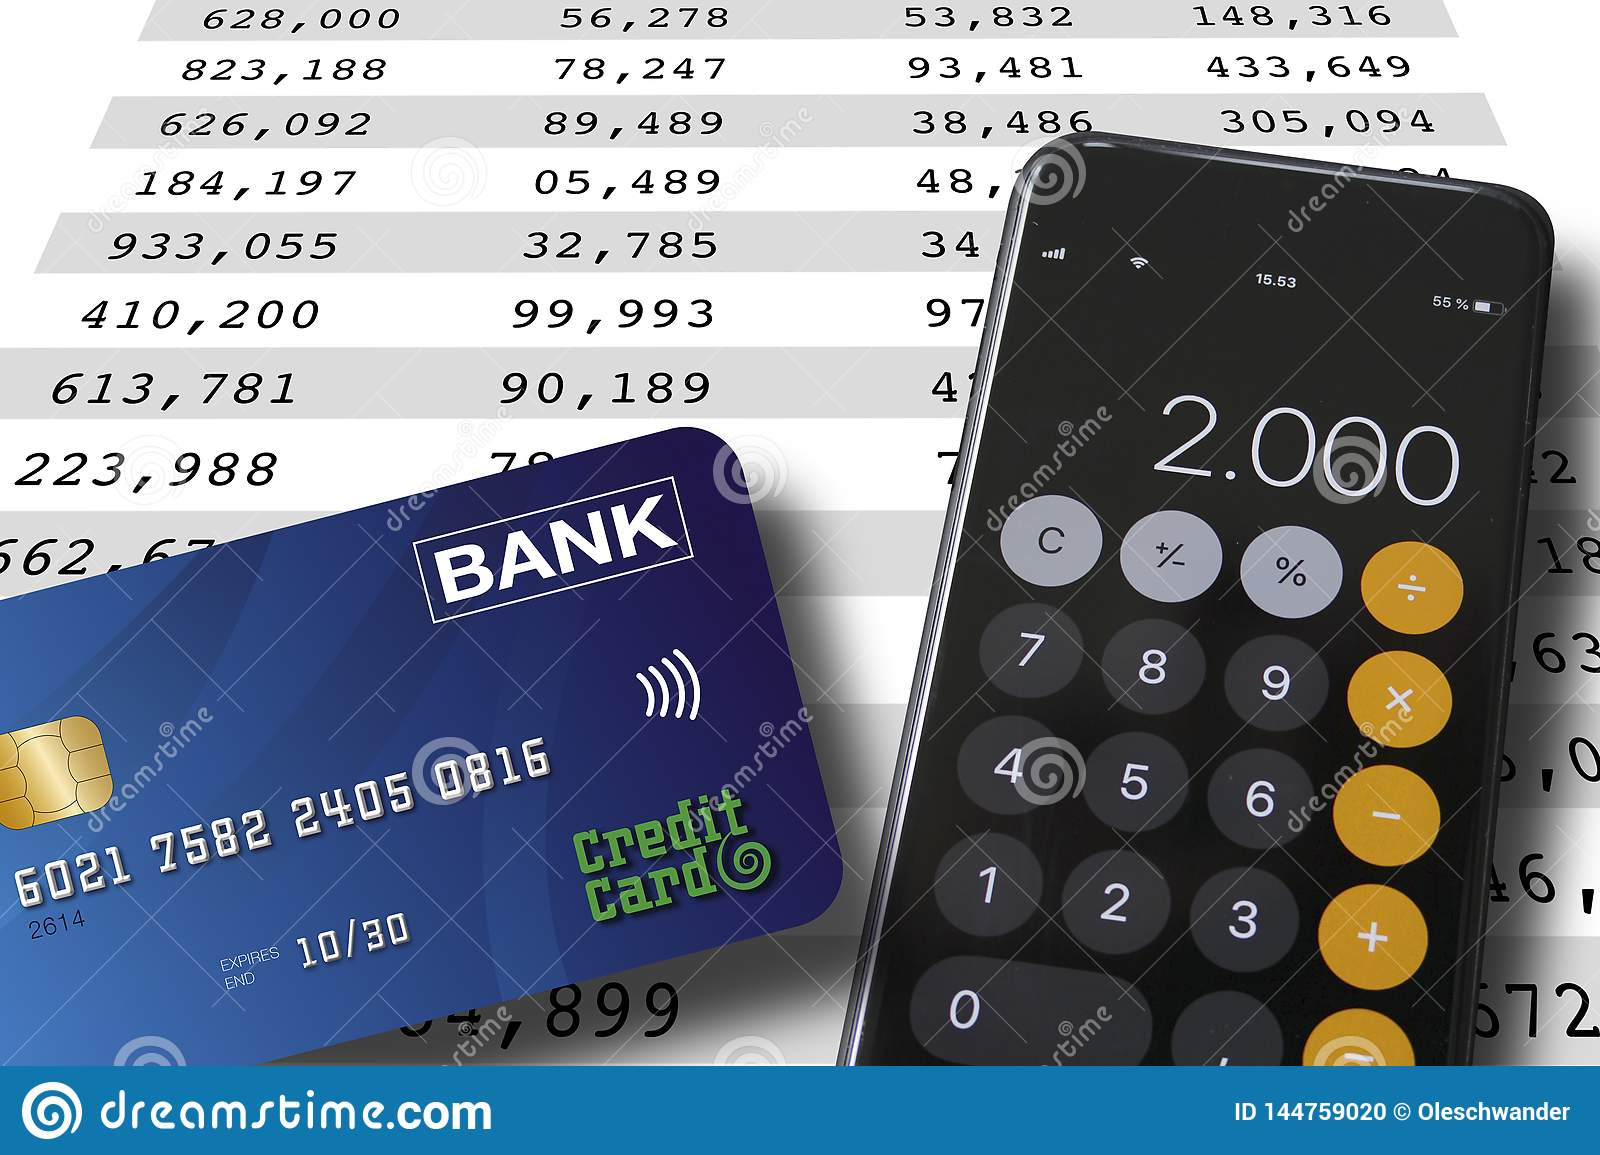 Credit card and smartphone lying on a spreadsheet background with numbers in colums. Accounting or banking concept